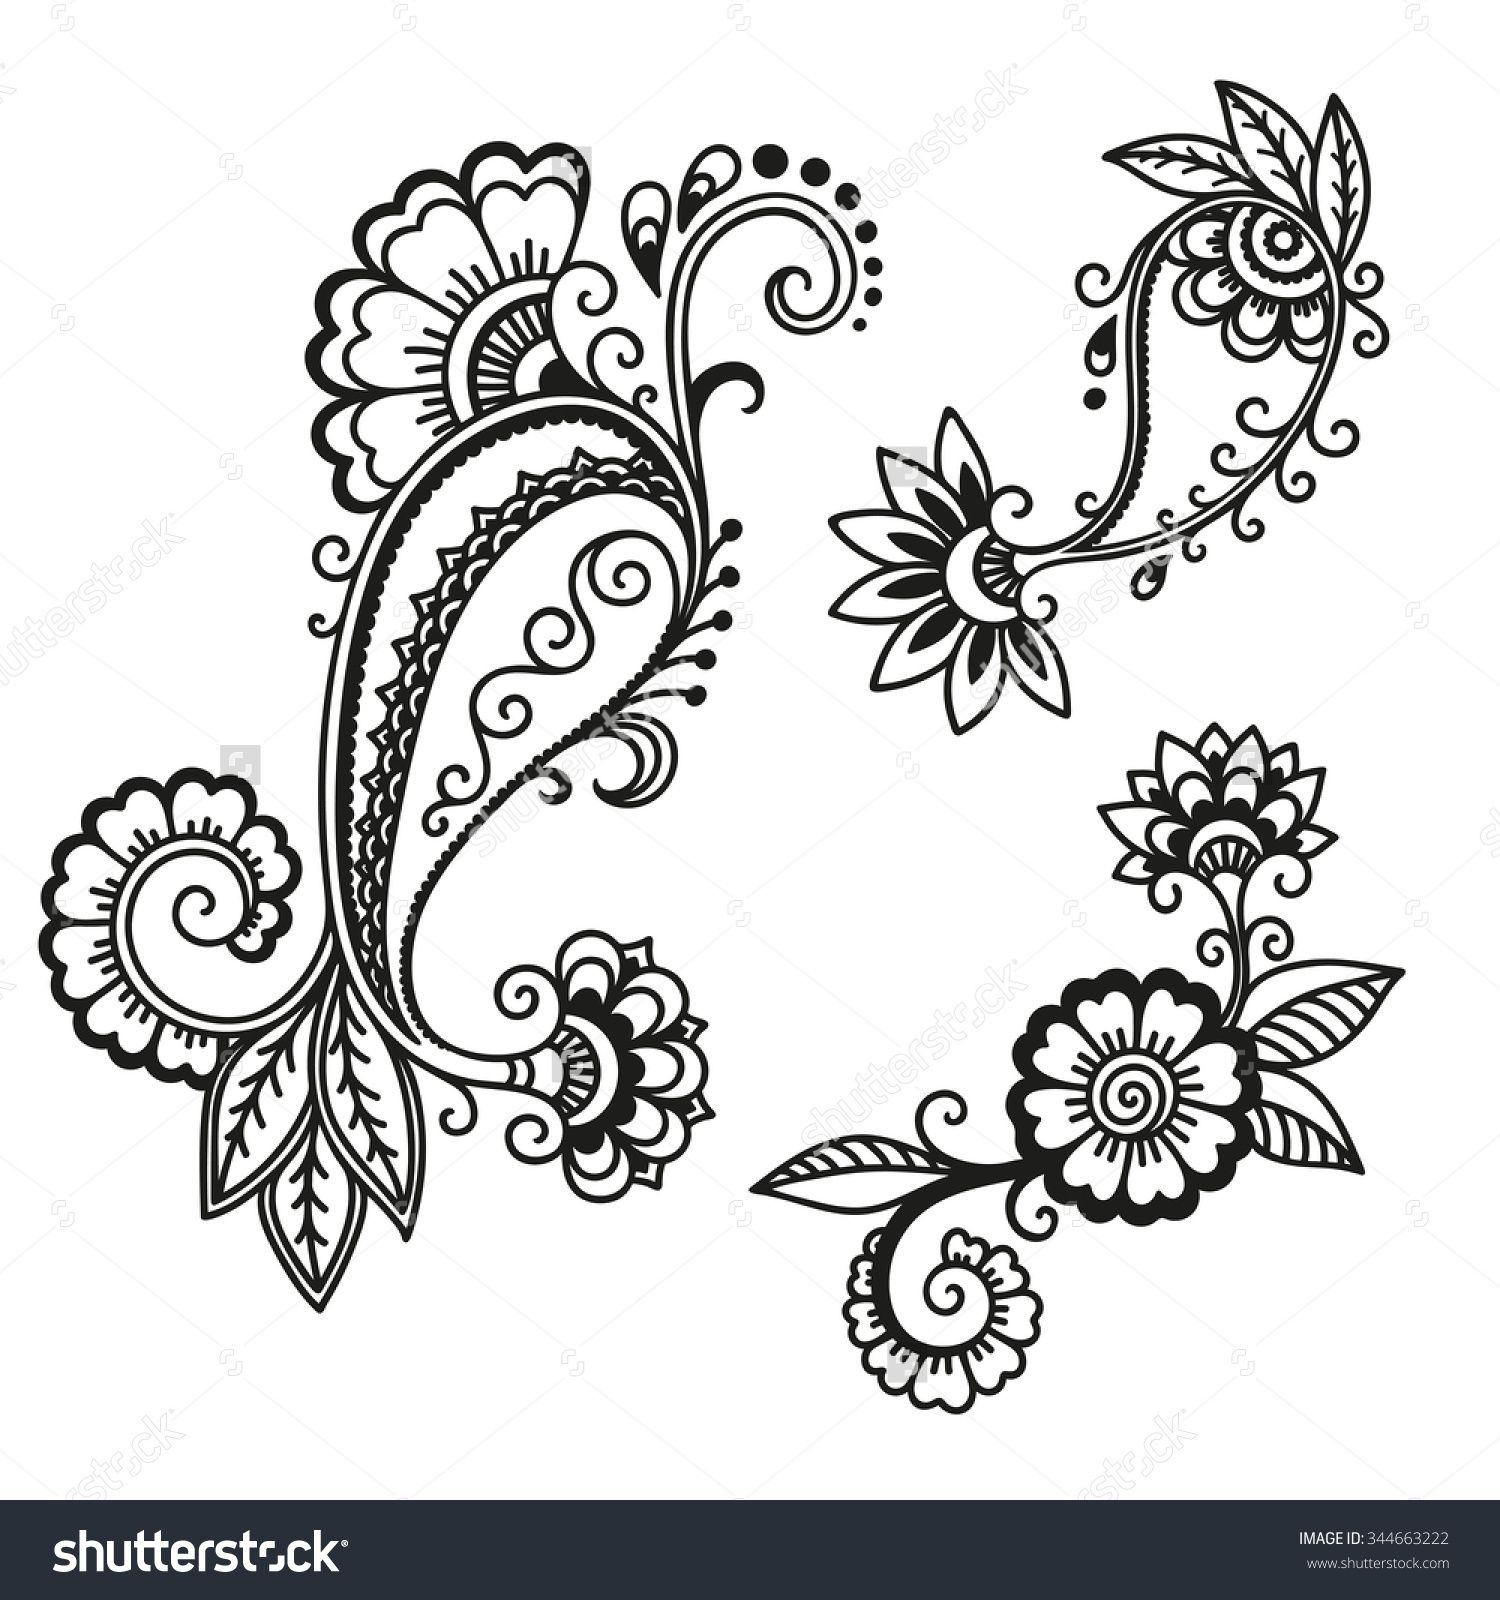 Mehndi Flower Chadar : Stock images similar to id kashmir henna design